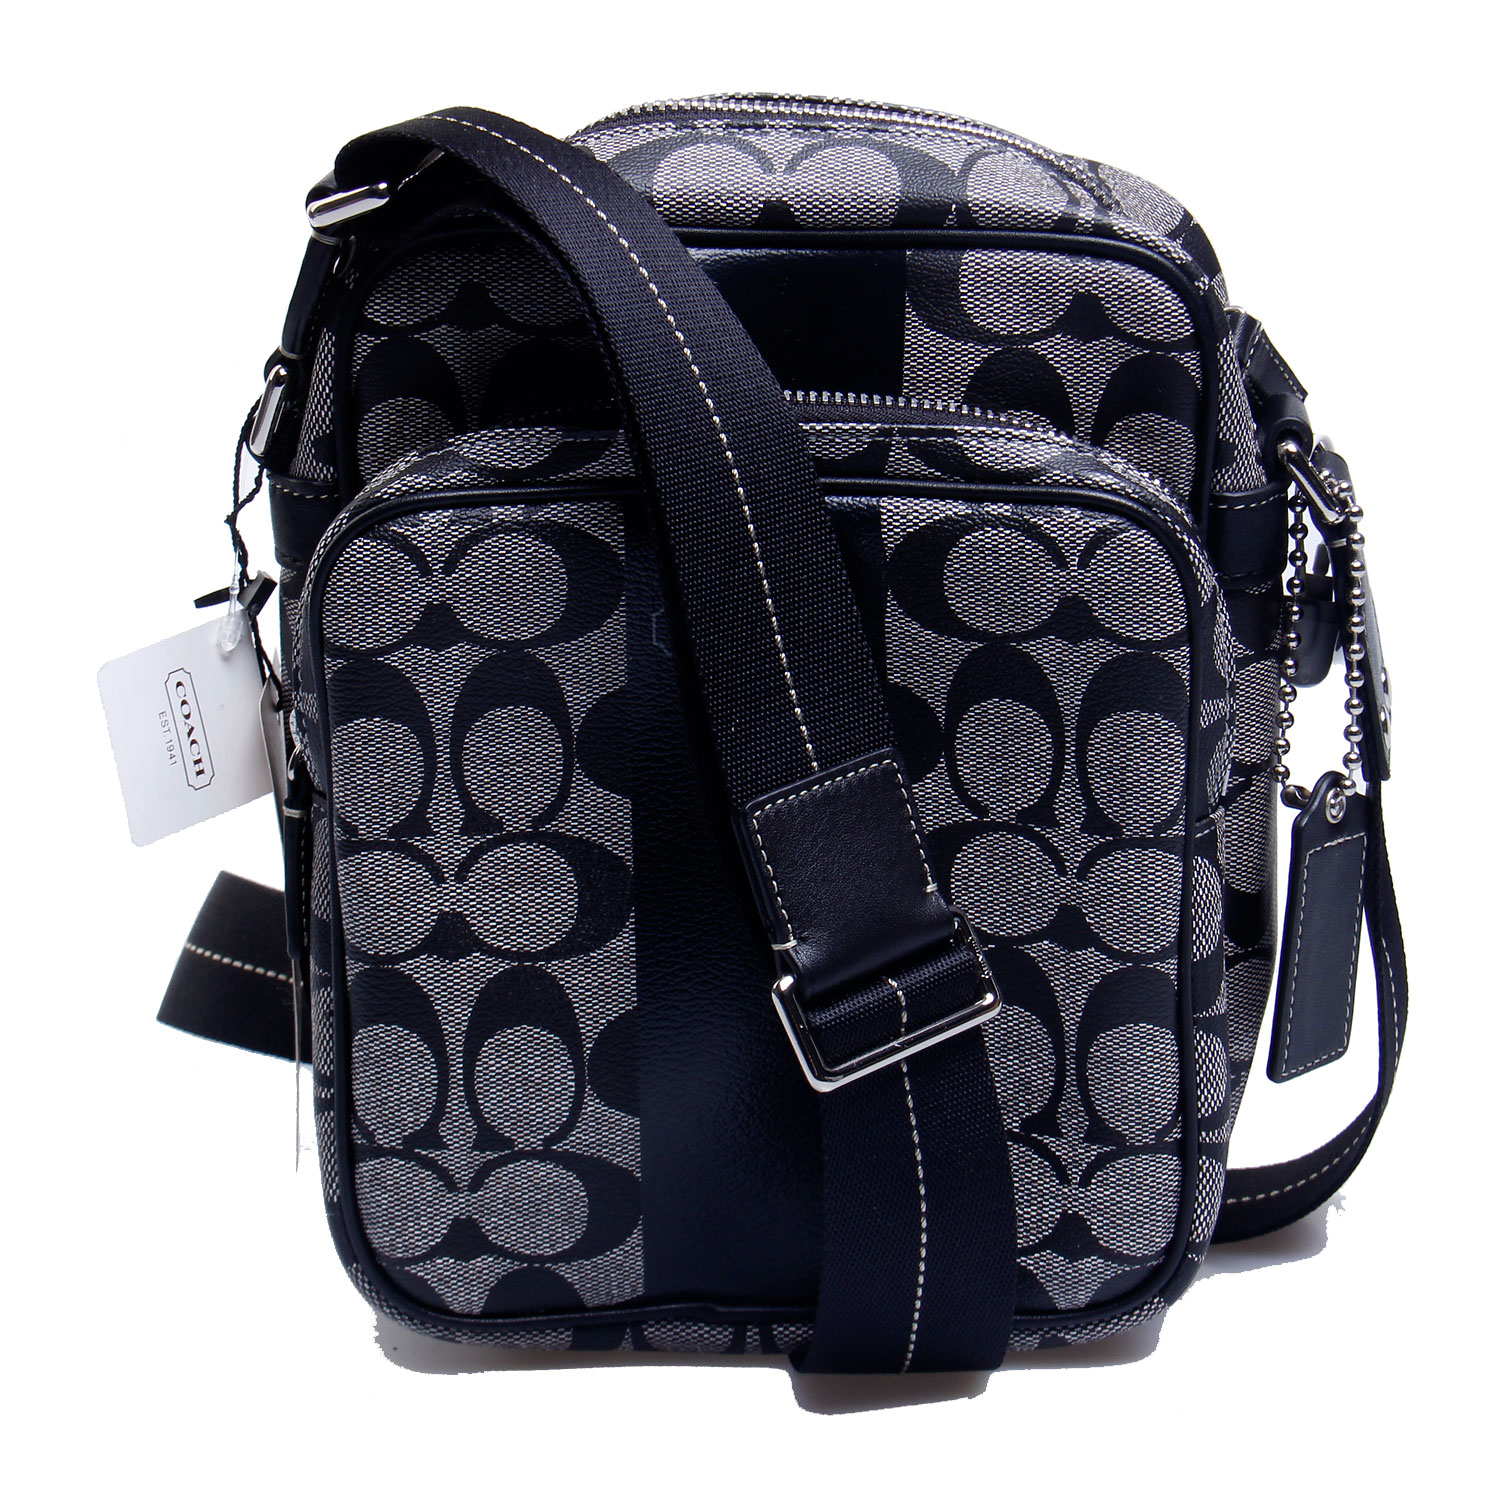 coach backpack purse outlet  coach factory outlet